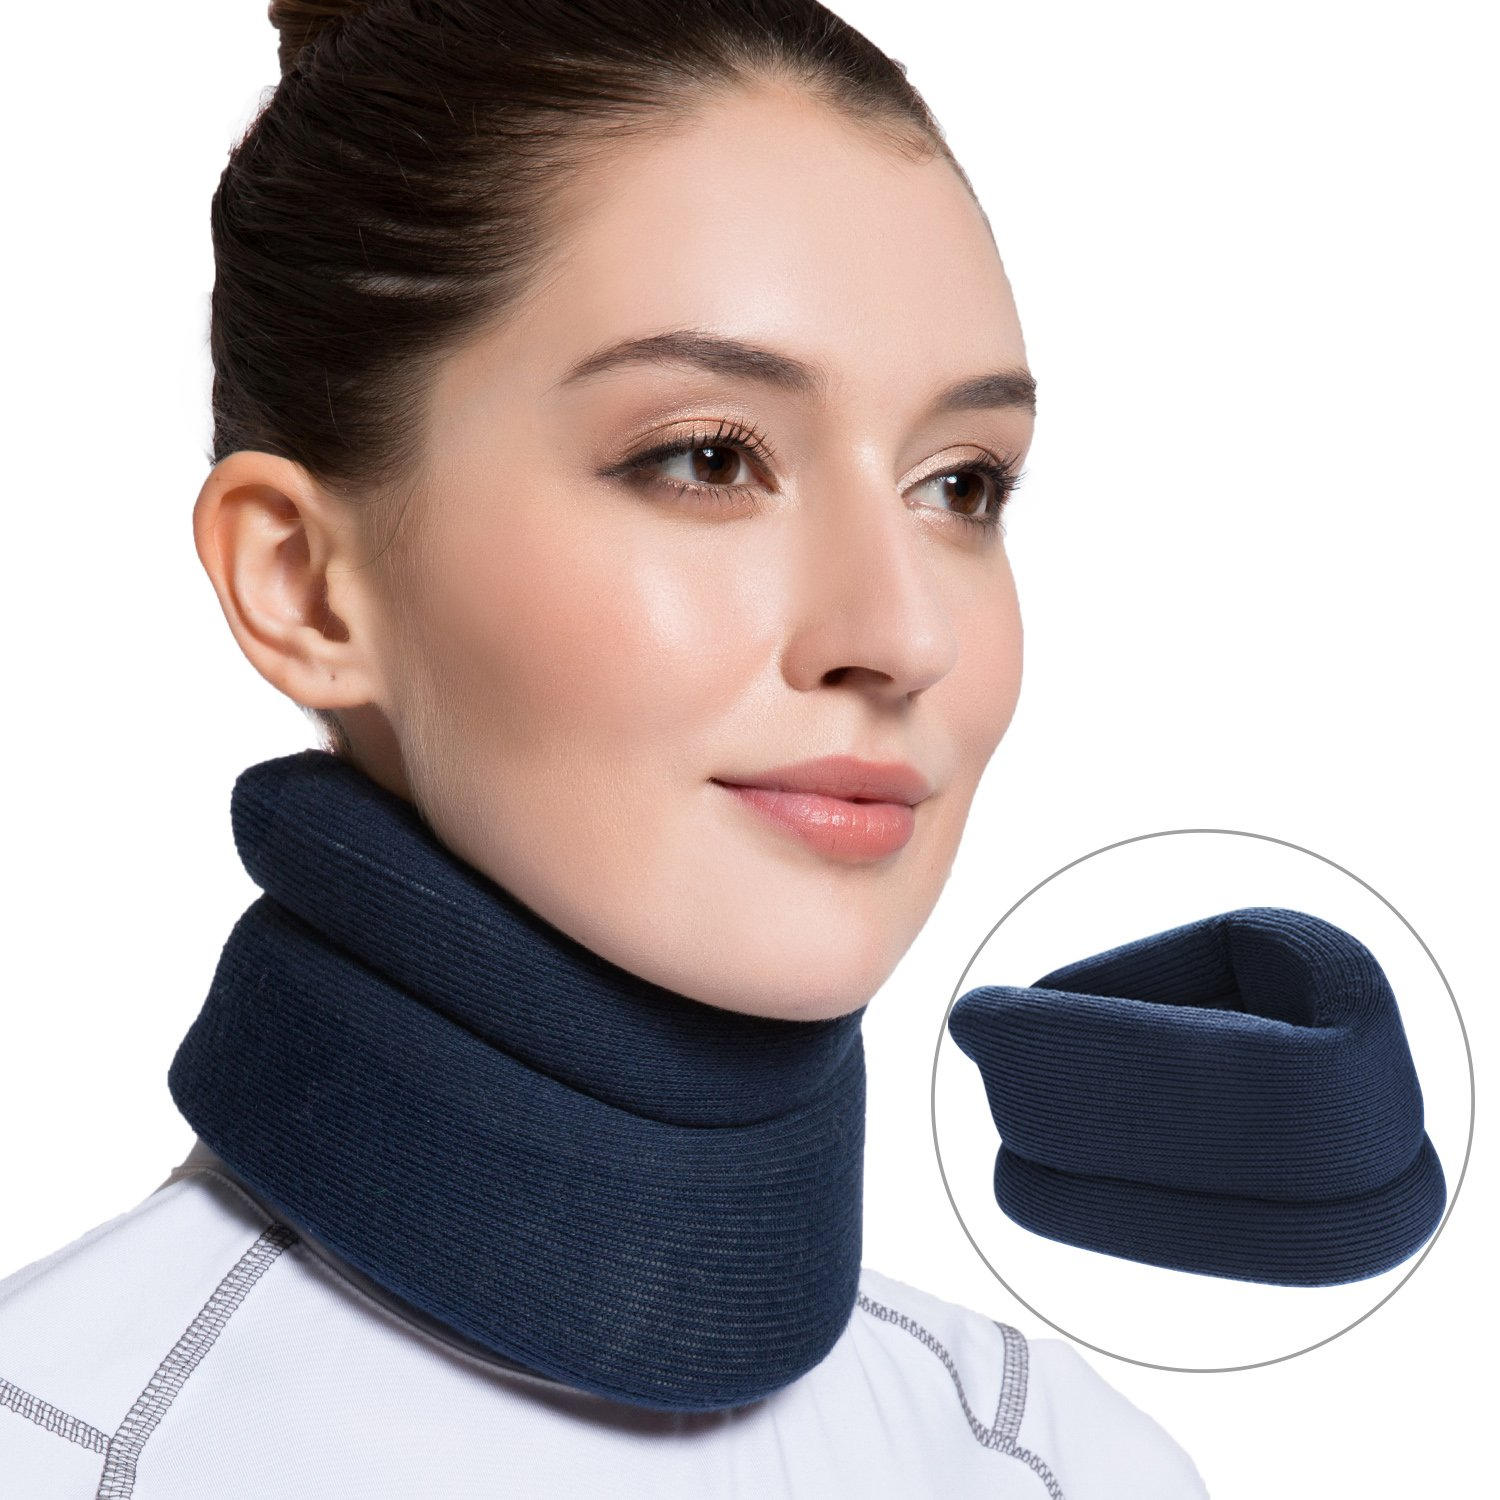 Velpeau Neck Brace -Foam Cervical Collar - Soft Neck Support Relieves Pain & Pressure in Spine - Wraps Aligns Stabilizes Vertebrae - Can Be Used During Sleep (Classic, Blue, Small)